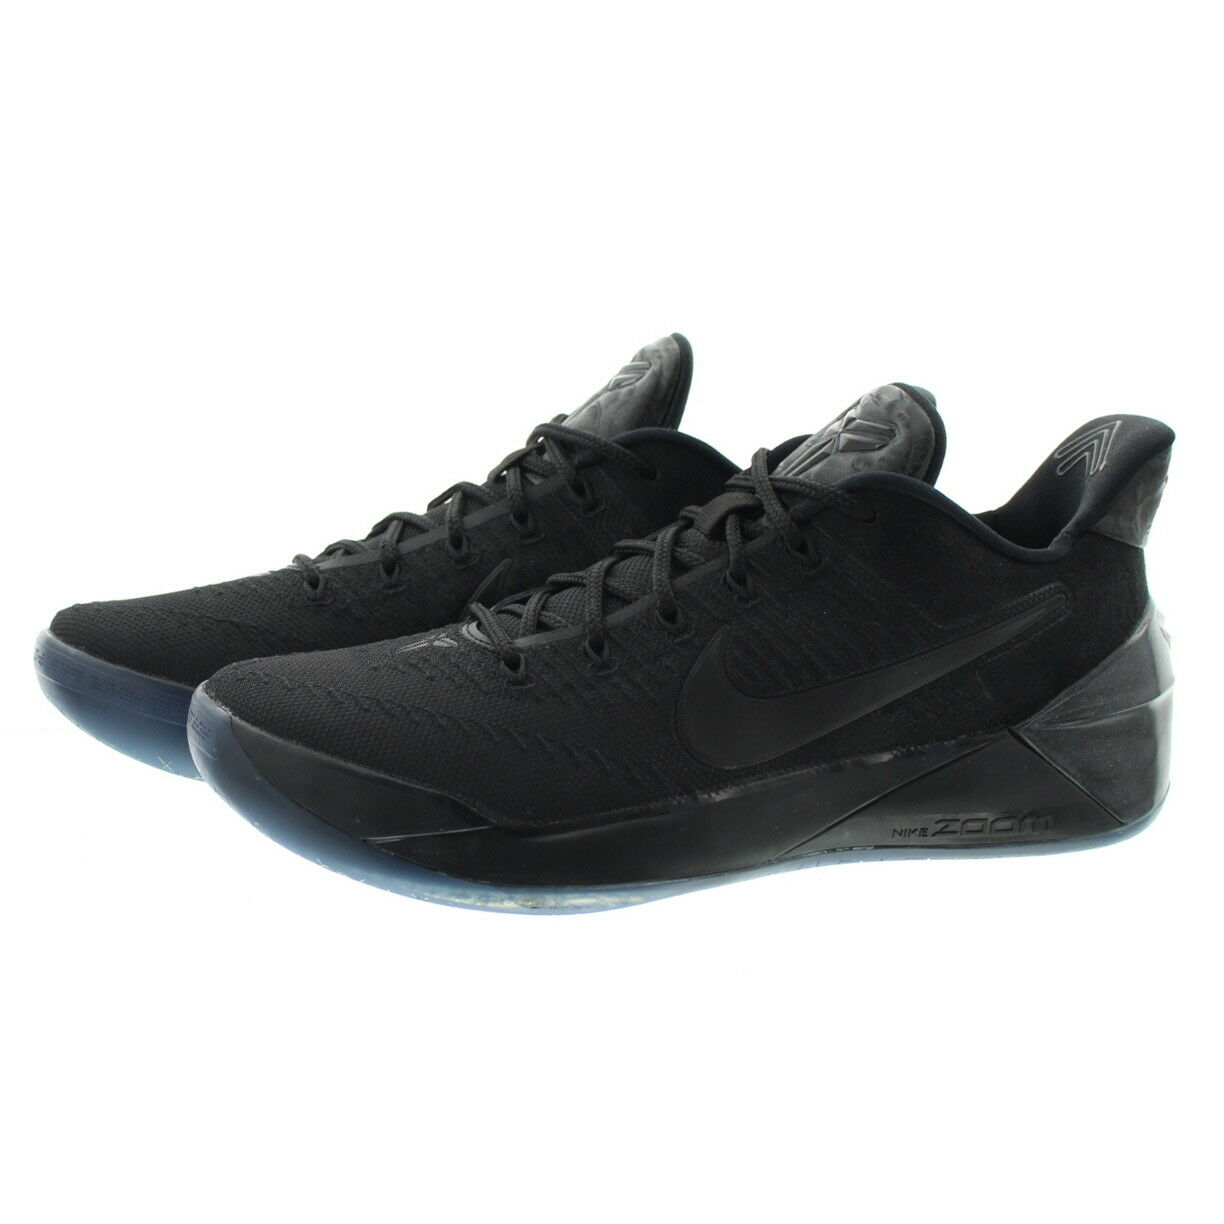 14f283ad44a5 Nike Kobe A.d. Triple Black AD Men Basketball Shoes Low 852425-064 ...